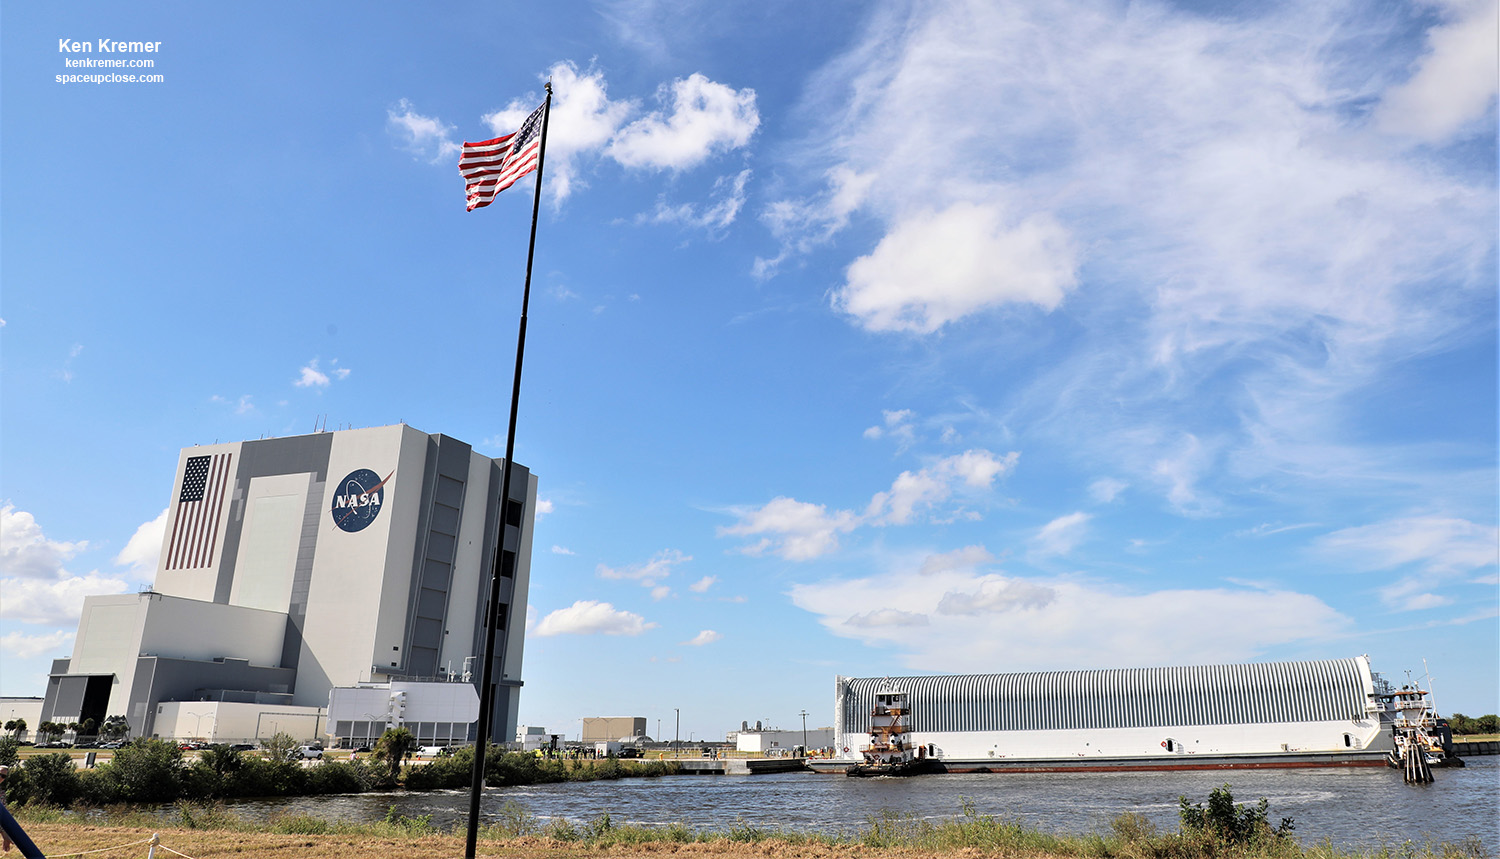 SLS Core Stage Pathfinder Arrives Kennedy Space Center to Support Artemis Moon Program: Photos